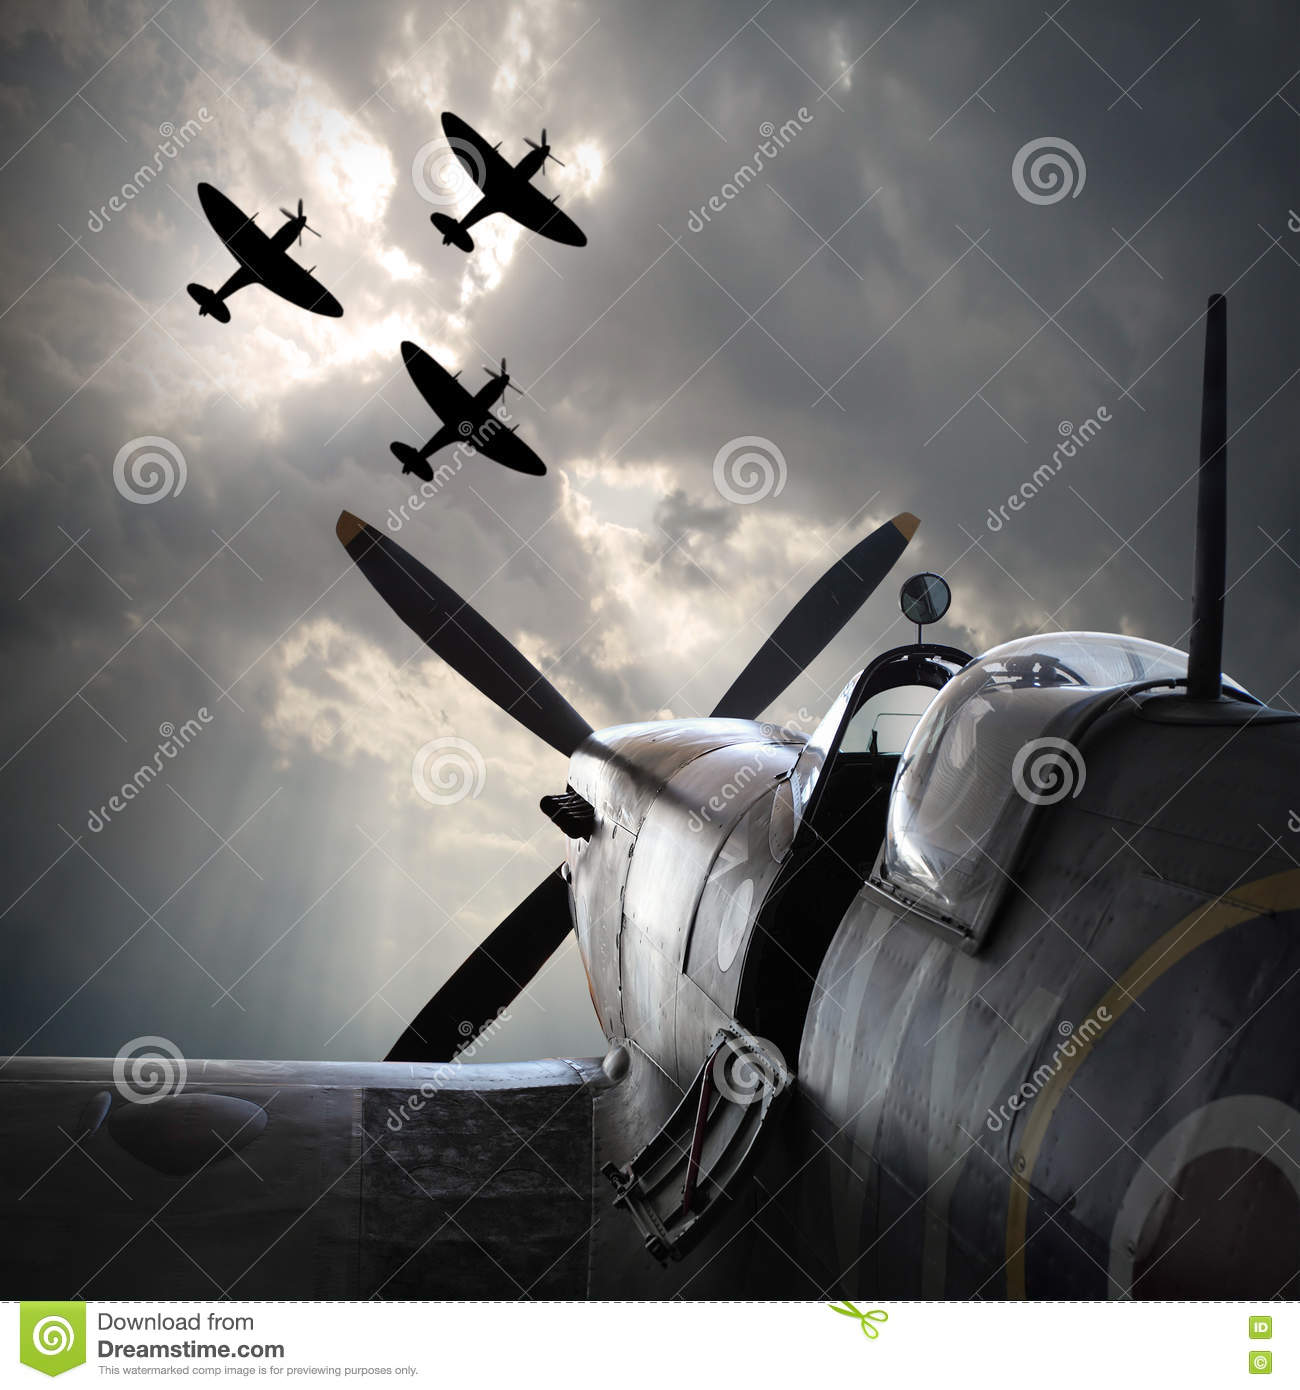 The Fighter planes.